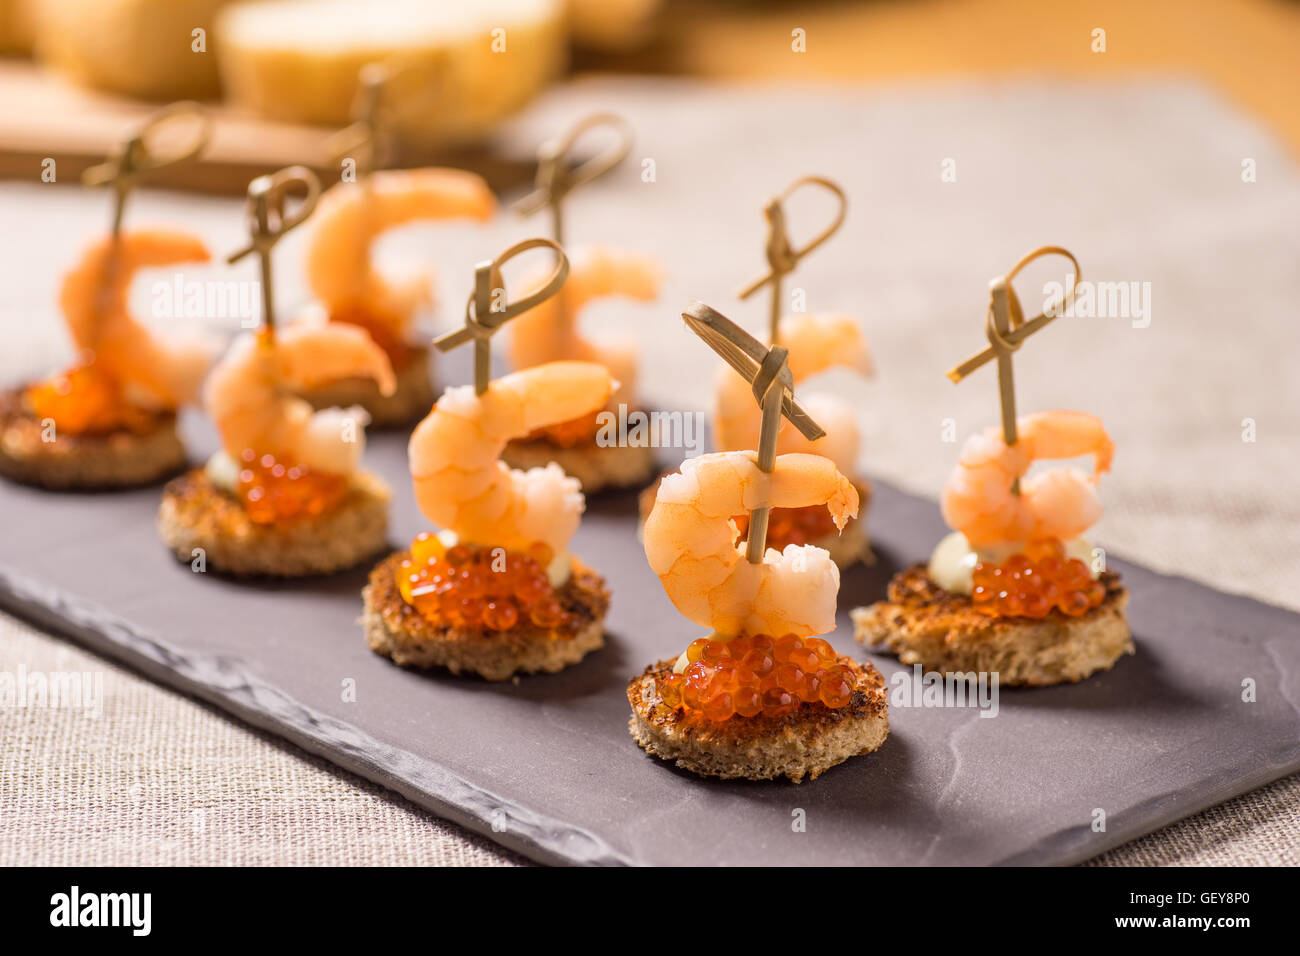 Shrimp Appetizer served on toasted bread with golden Caviar - Stock Image